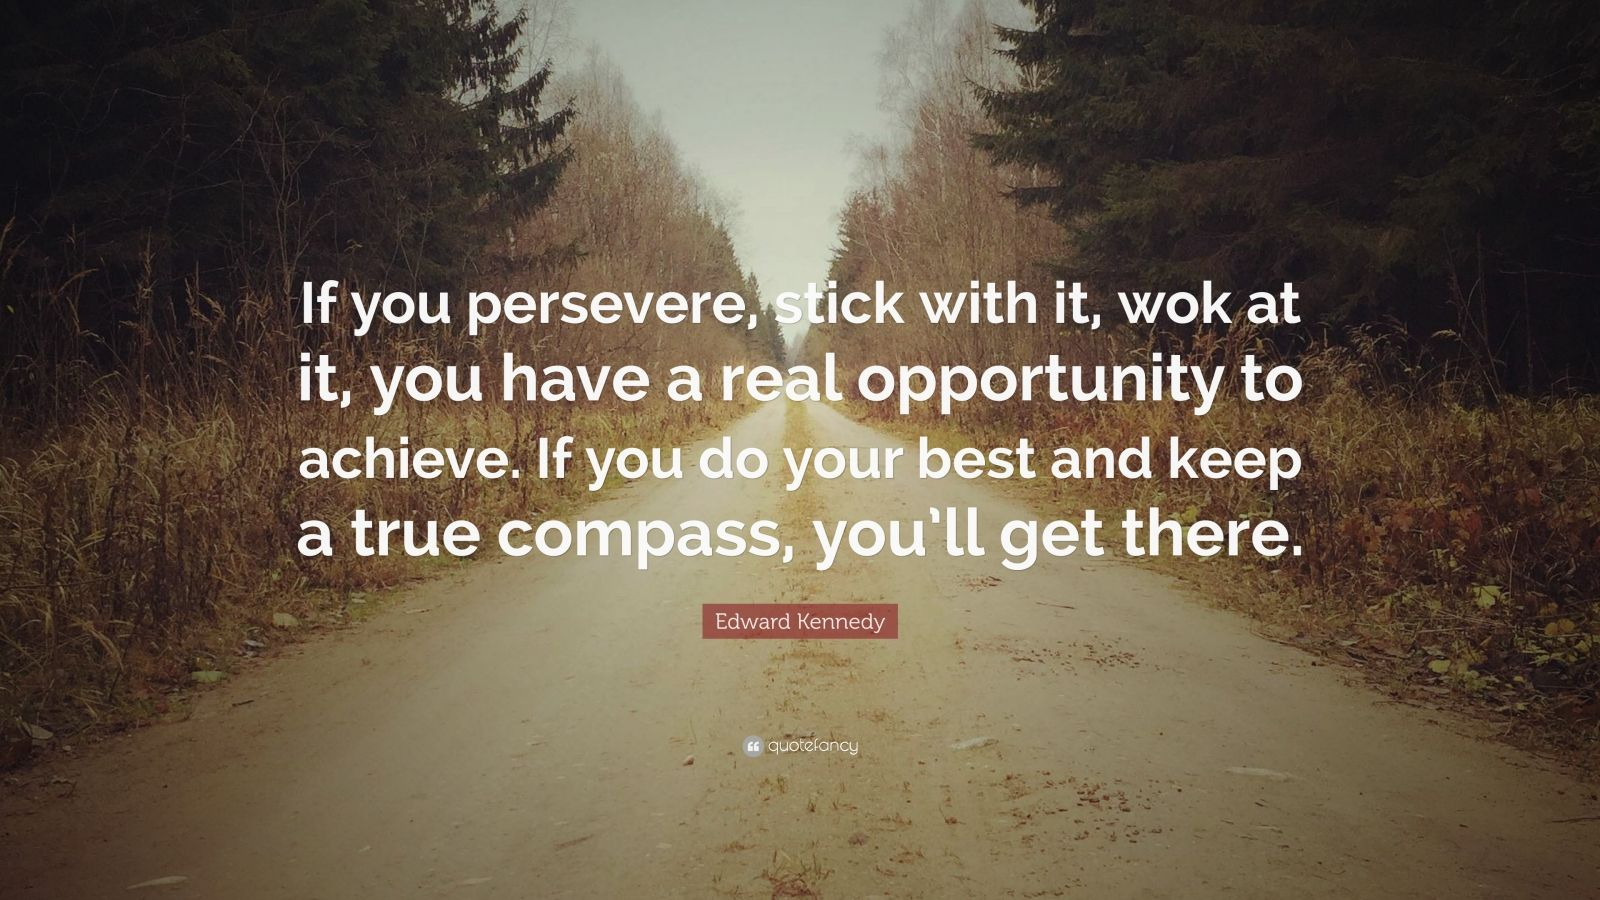 "Edward Kennedy Quote: ""If you persevere, stick with it, wok at it, you have a real opportunity to achieve. If you do your best and keep a true compass, you'll get there."""